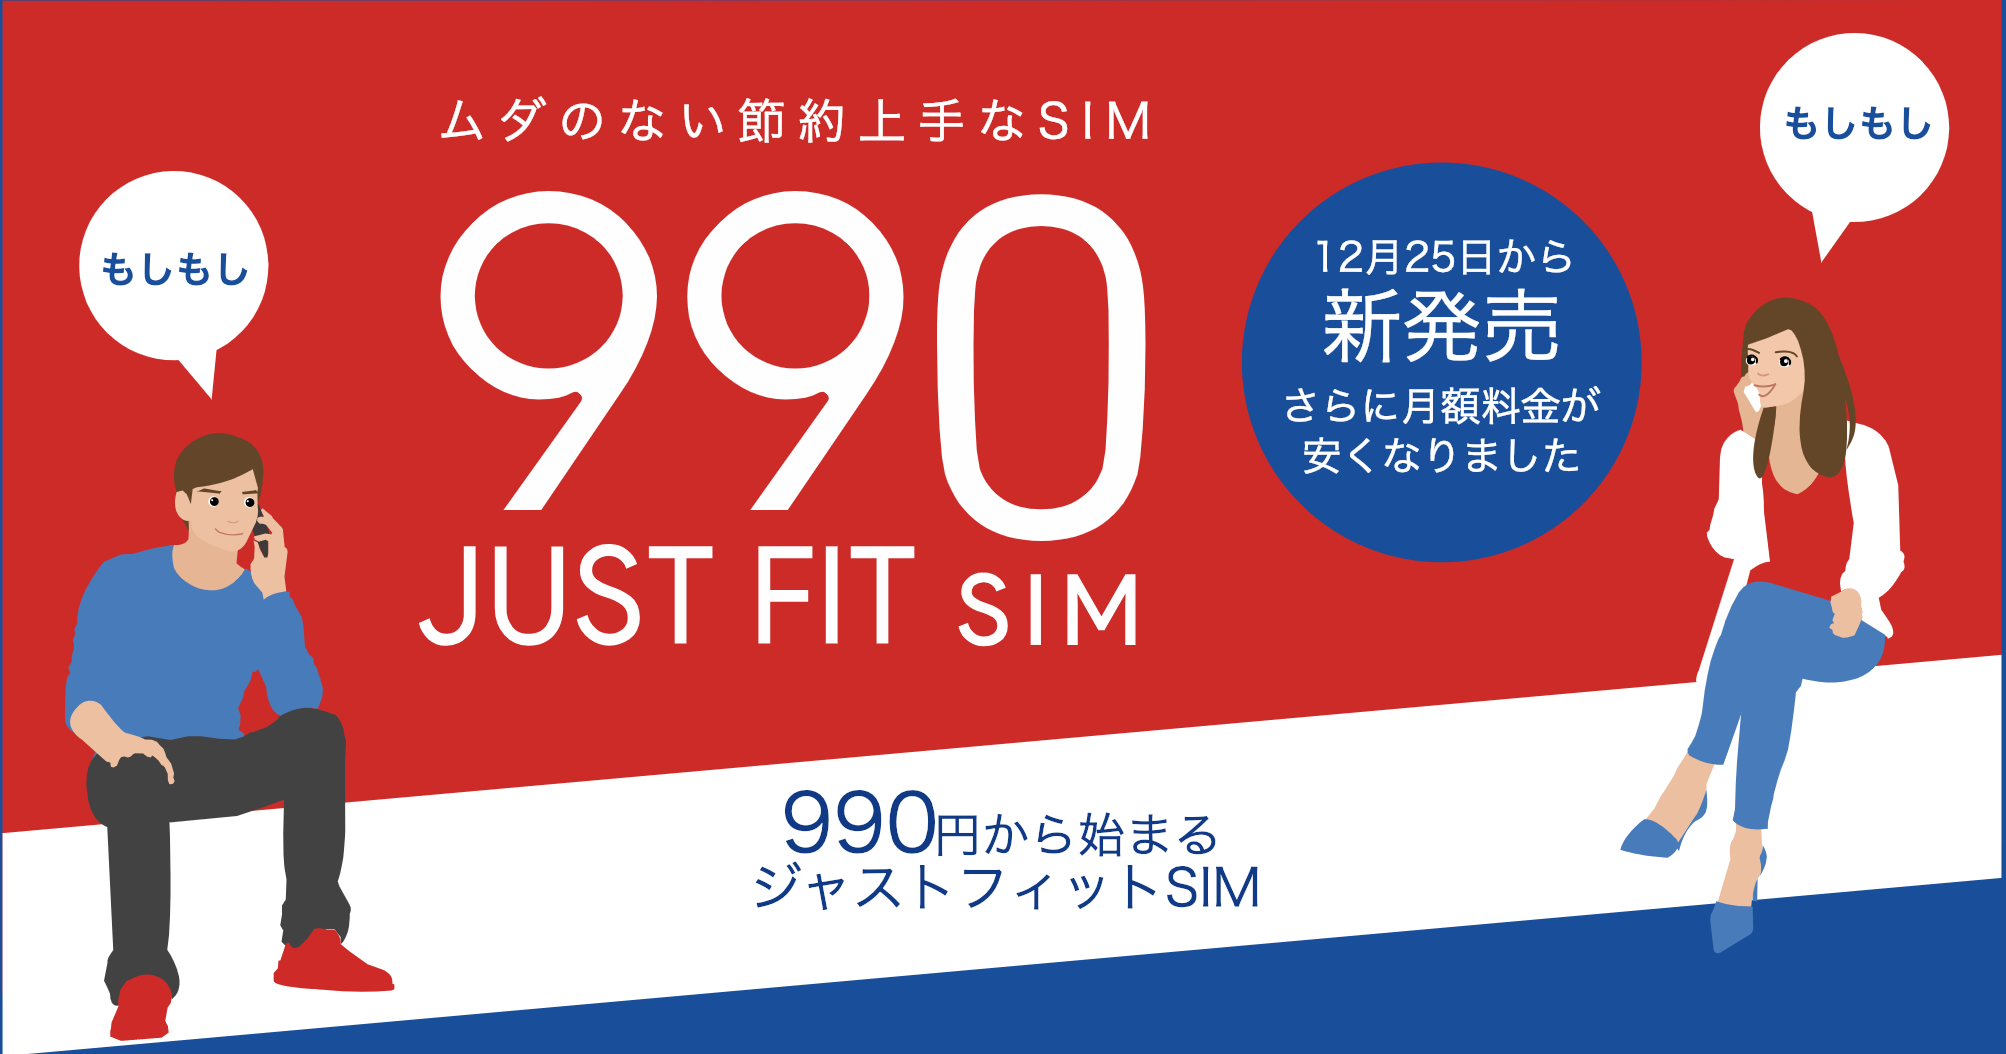 b-mobile S 990 JUST FIT SIM